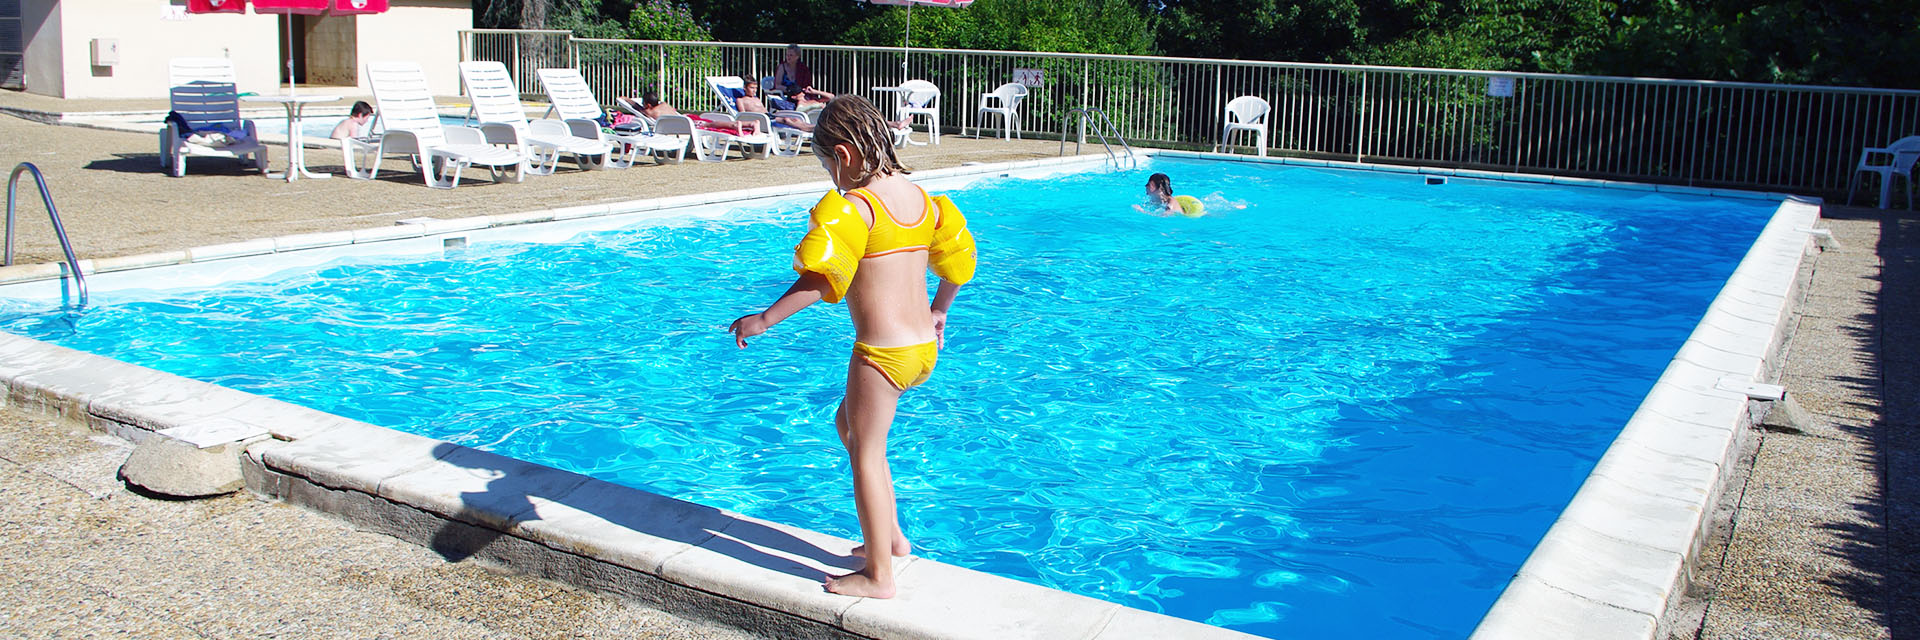 Village_club_vacances_périgord-quercy-la-gironie-piscine